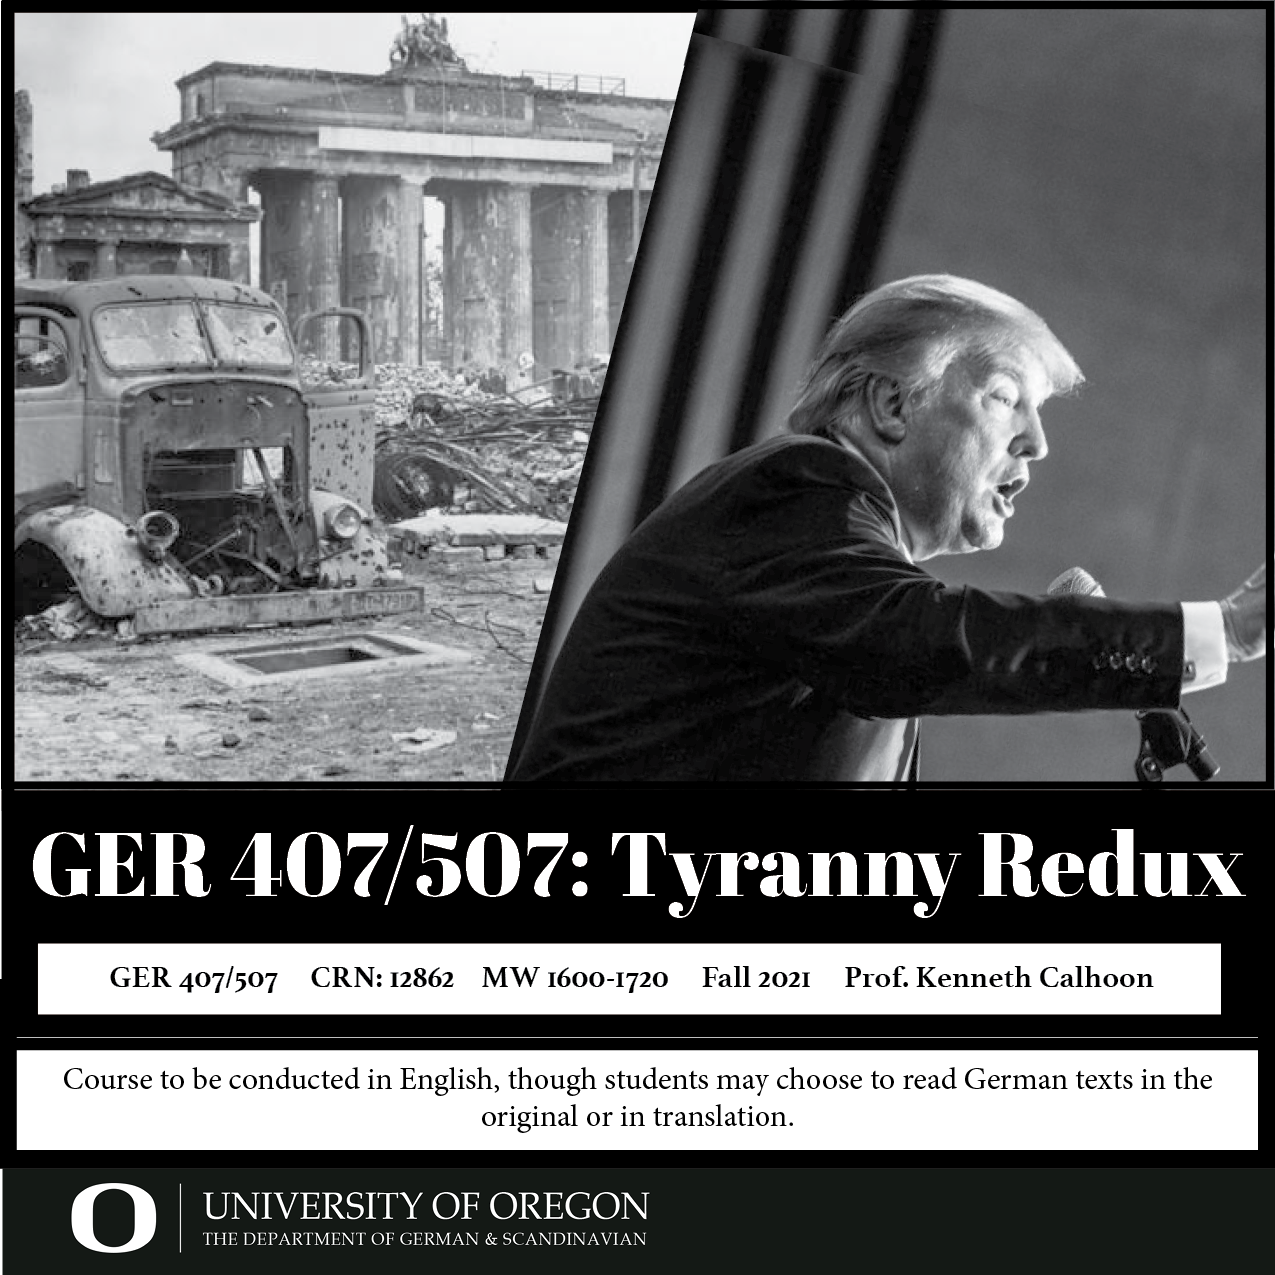 ger 407/507 flyer comparing Trump with a photo of postwar Germany